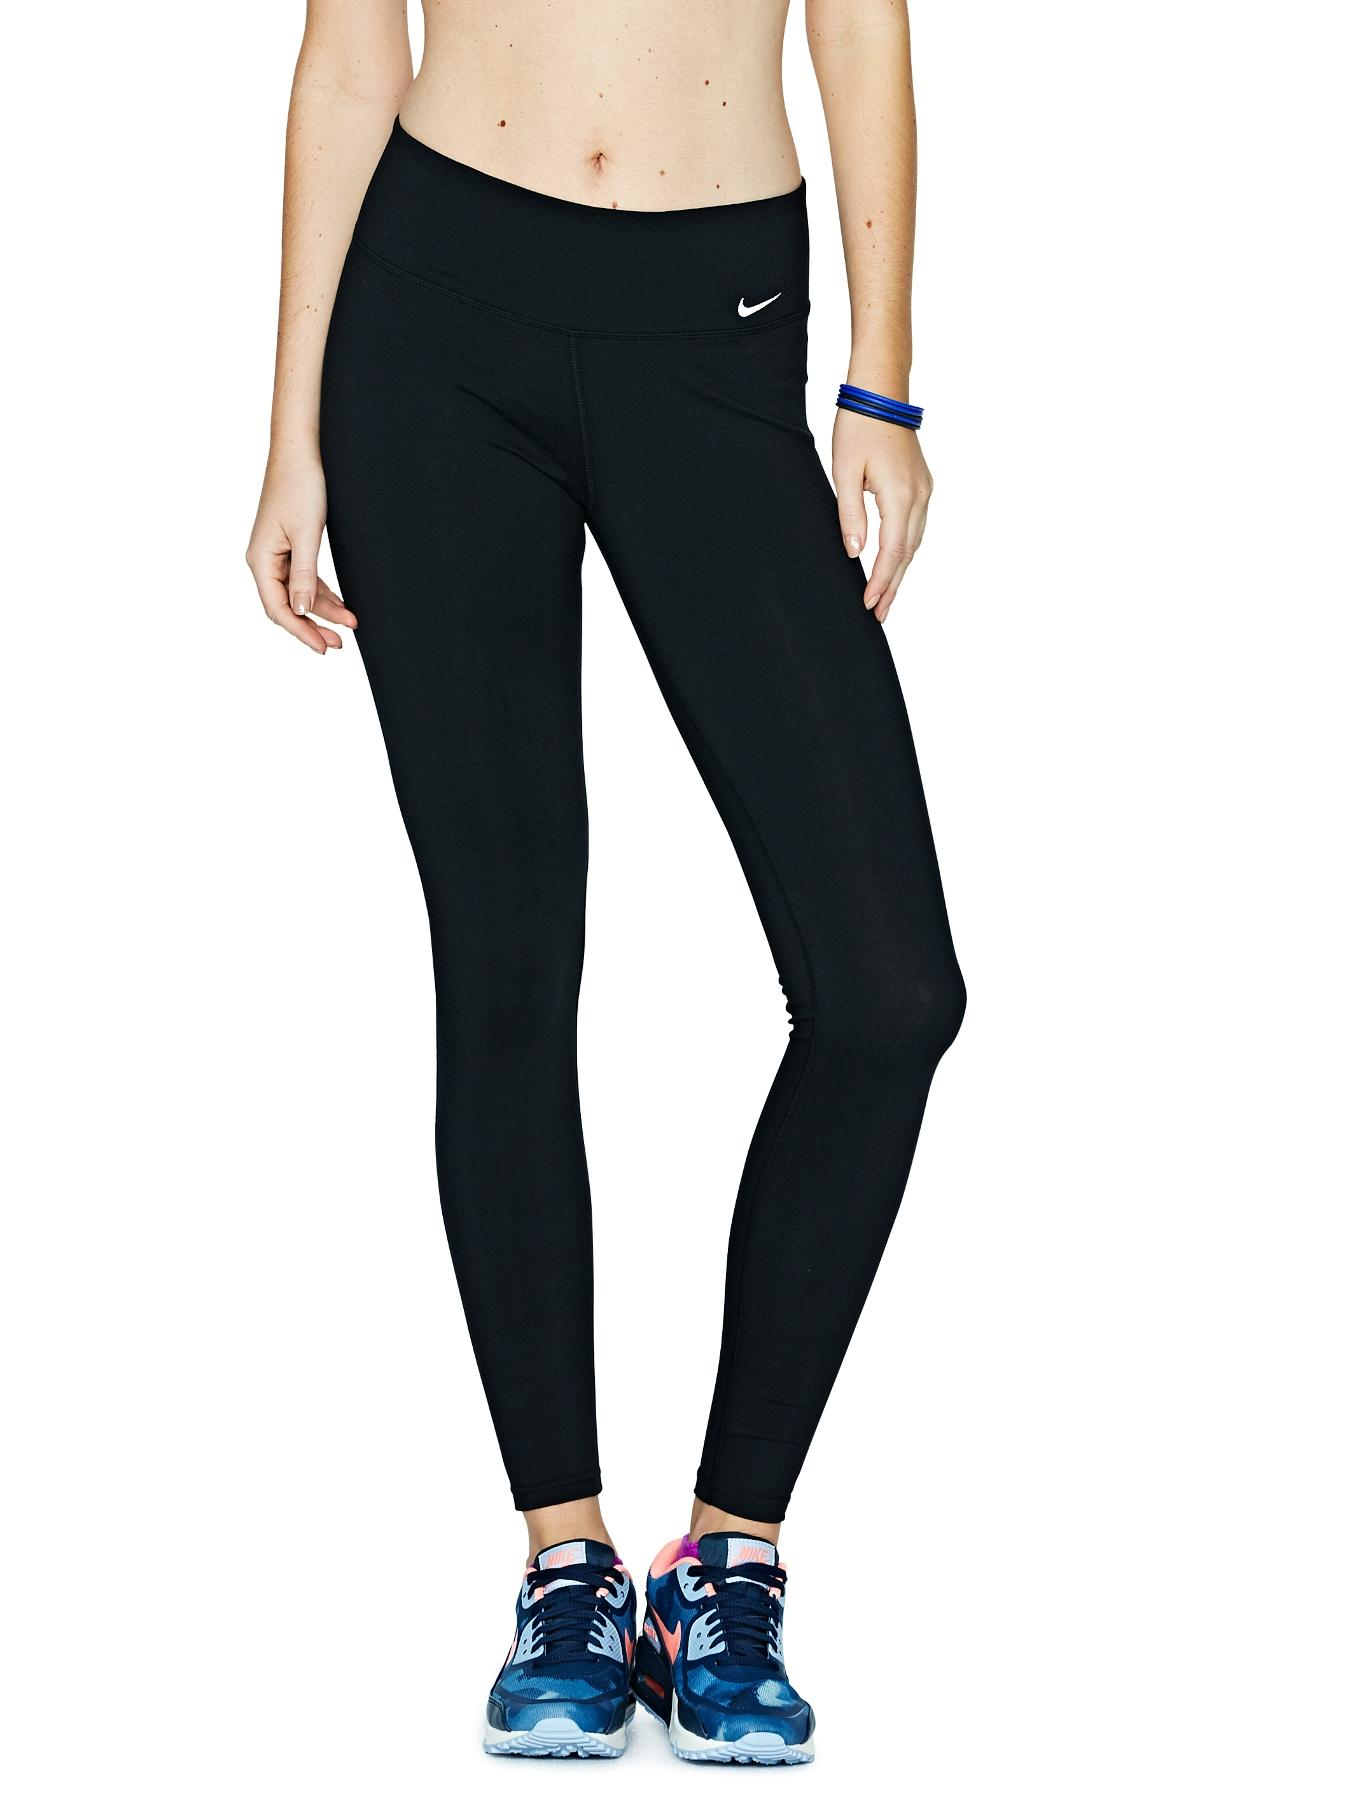 Legend Tight DFC Pants, Black